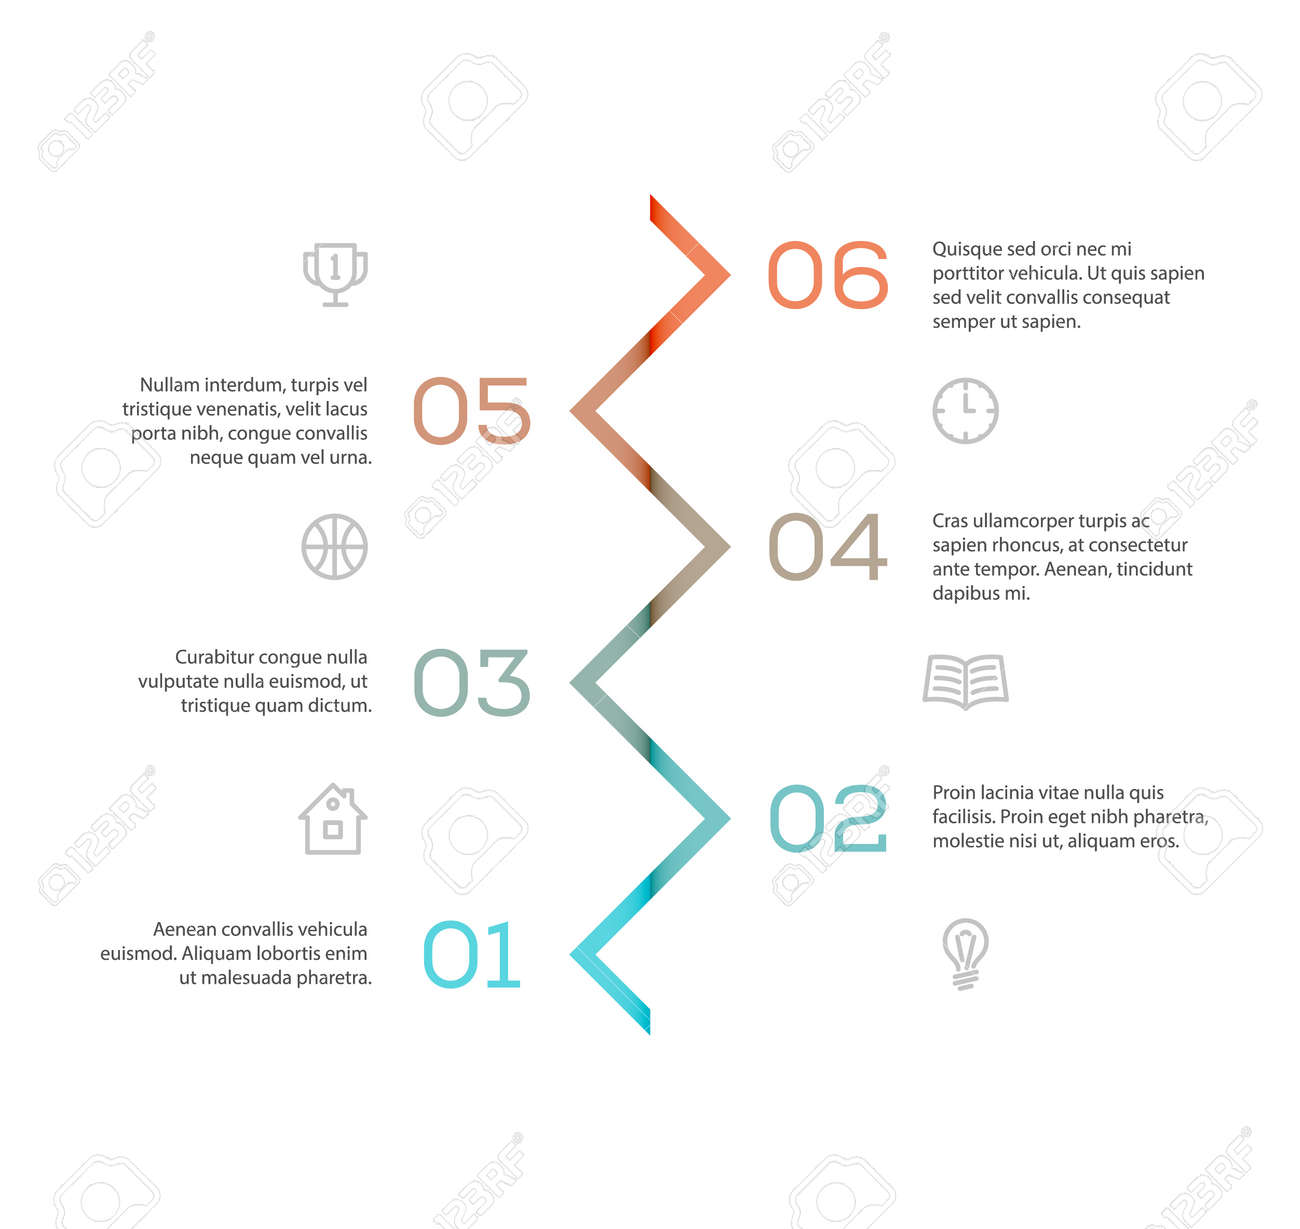 cool infographic template with zigzag line forming arrows pointing